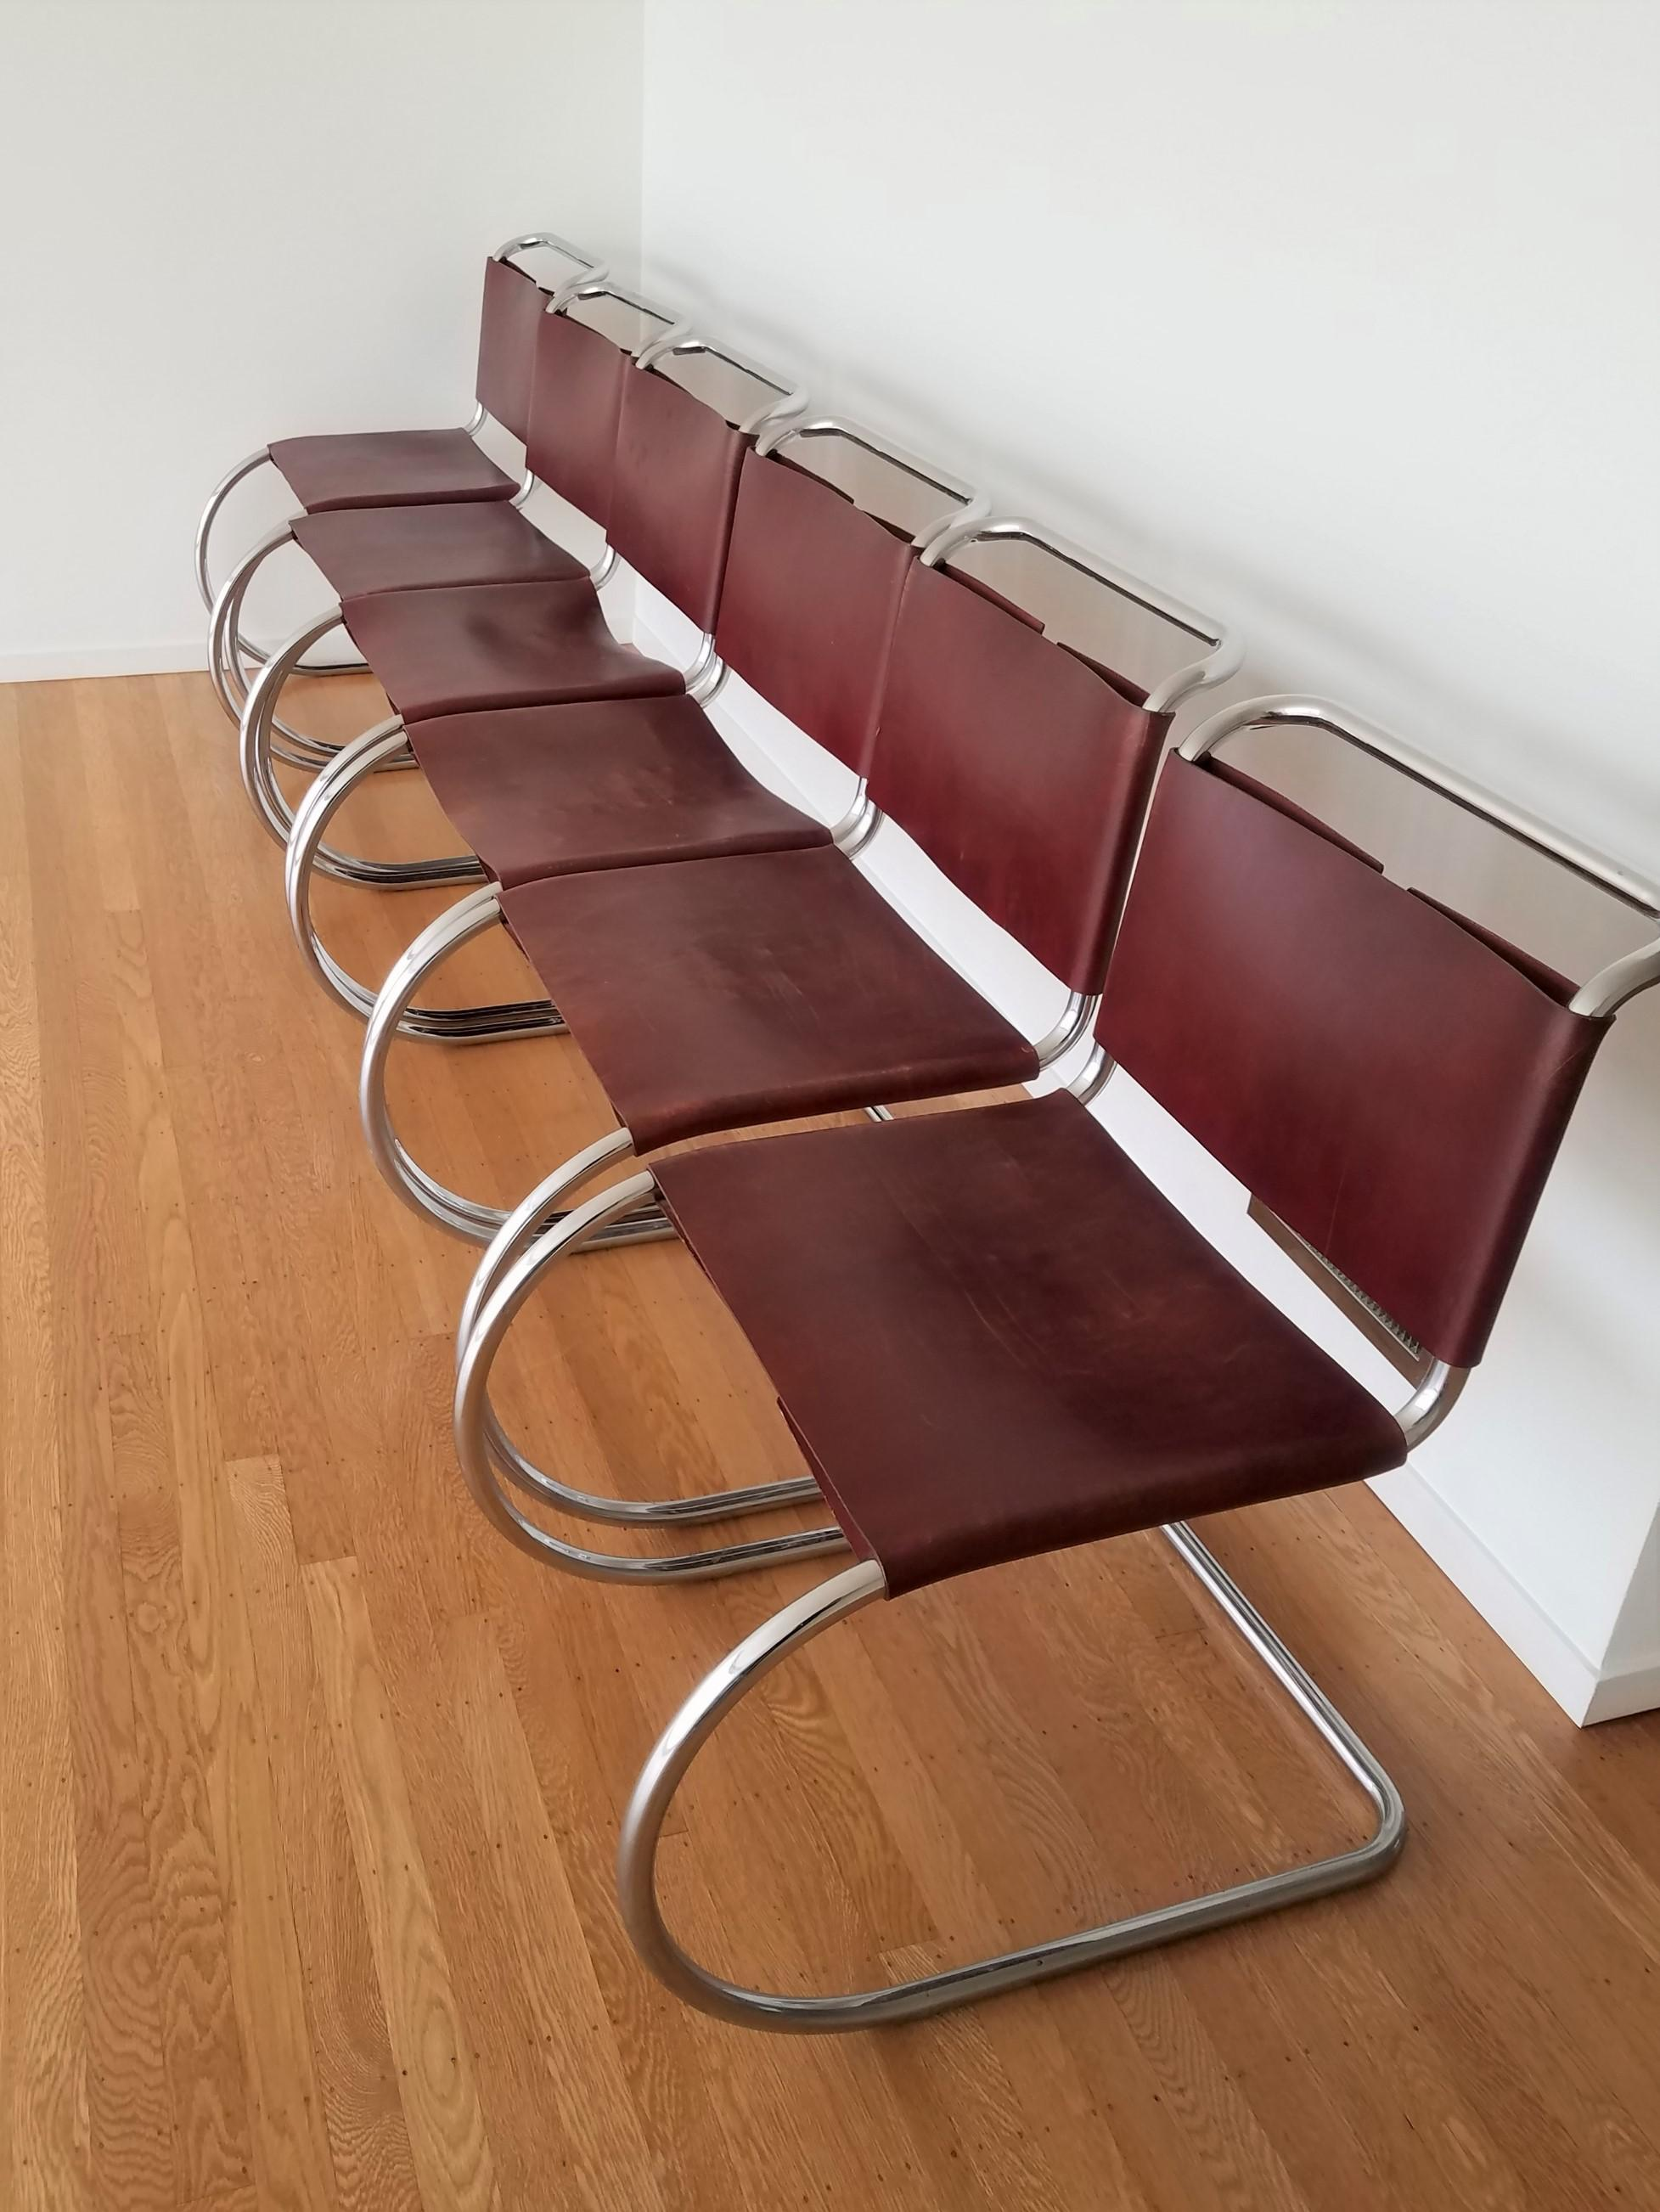 Superbe Iconic Minimalist Design, The MR Style Chairs Are A Thick Burgundy Leather  With Matching Rawhide